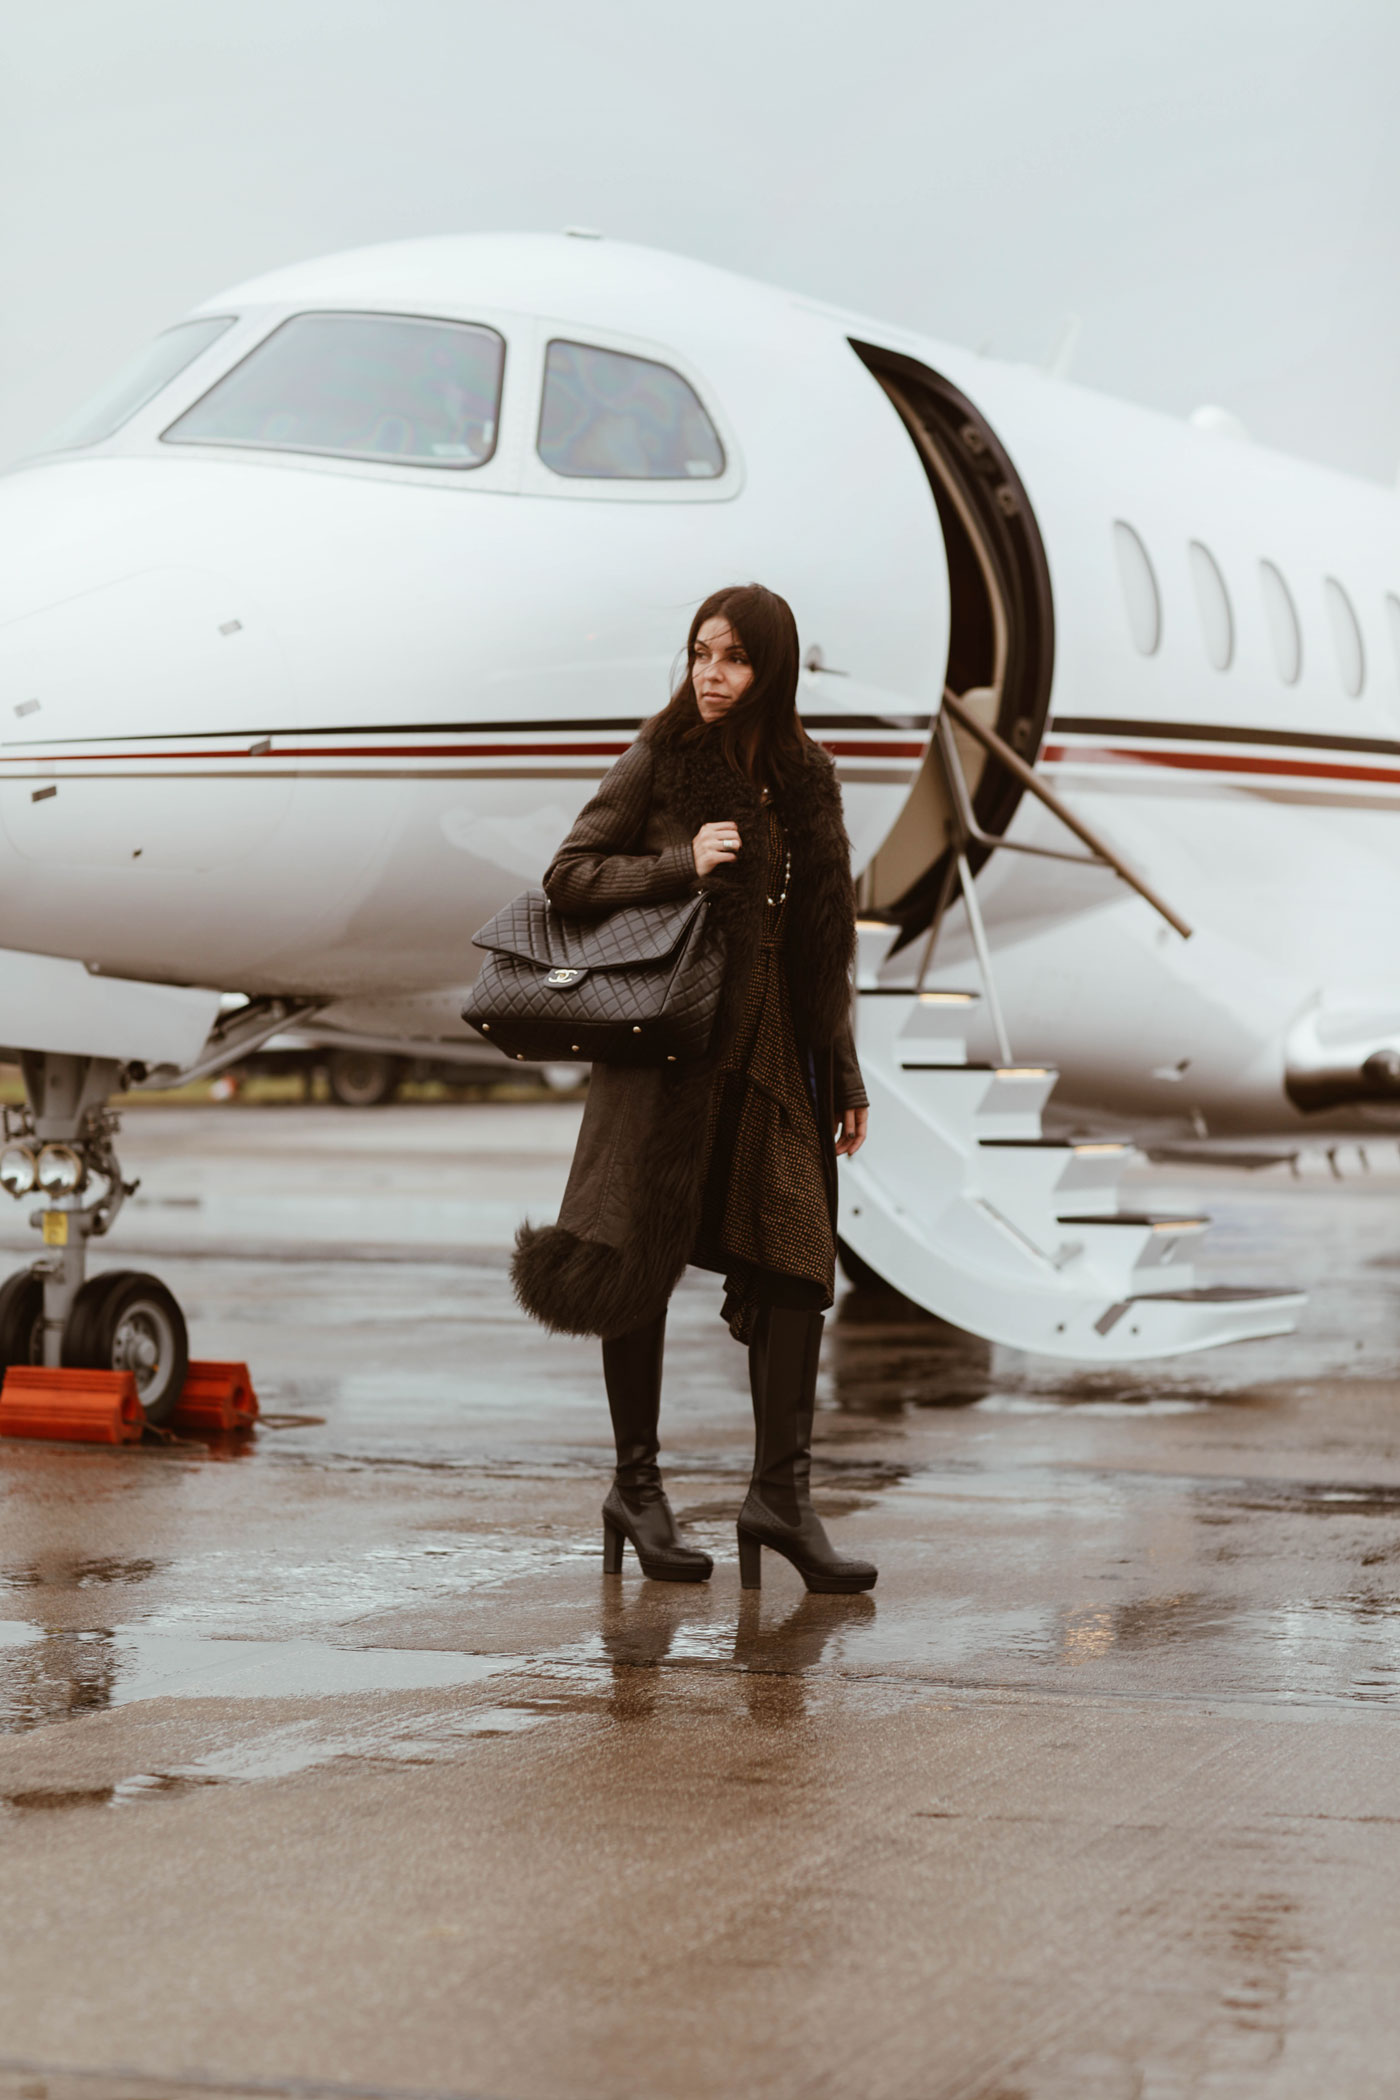 With Netjets to Scotland